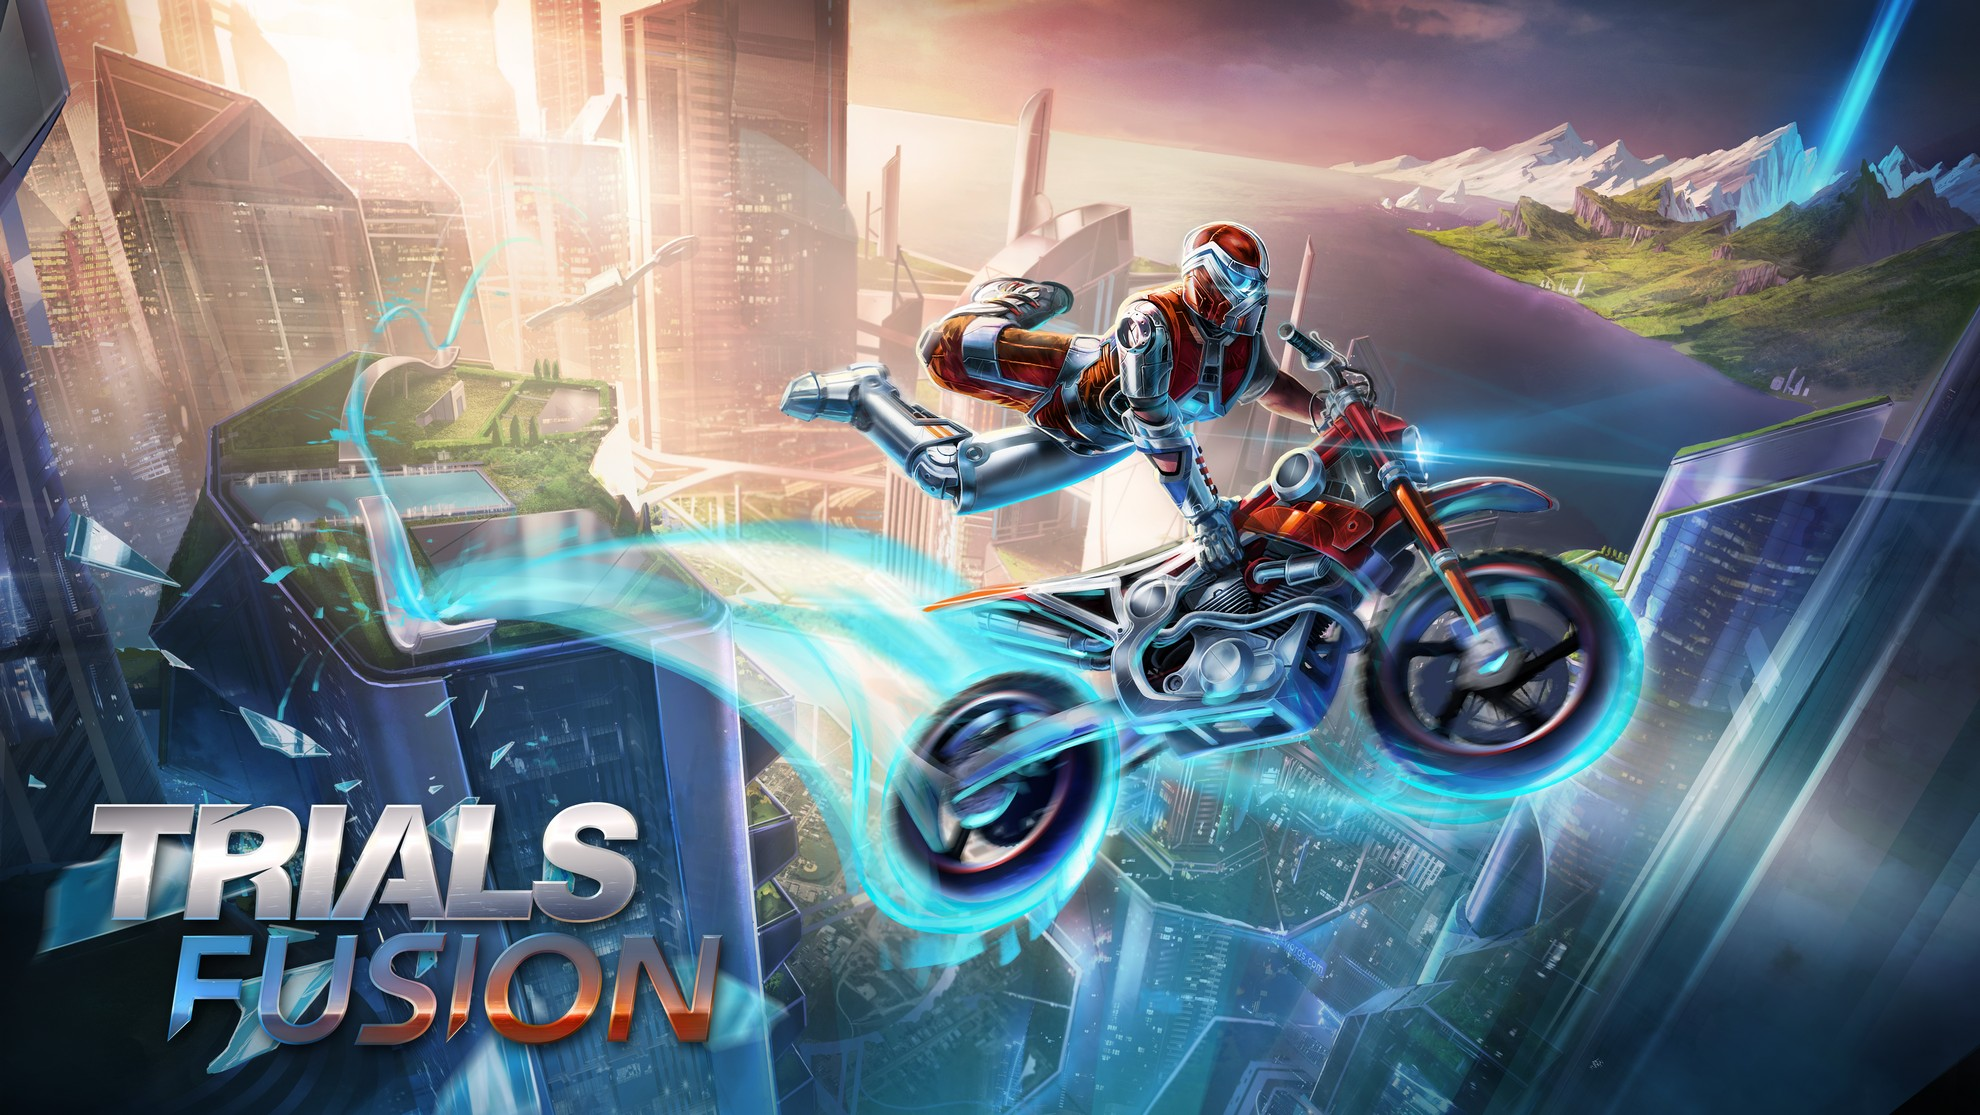 1980x1115 > Trials Fusion Wallpapers